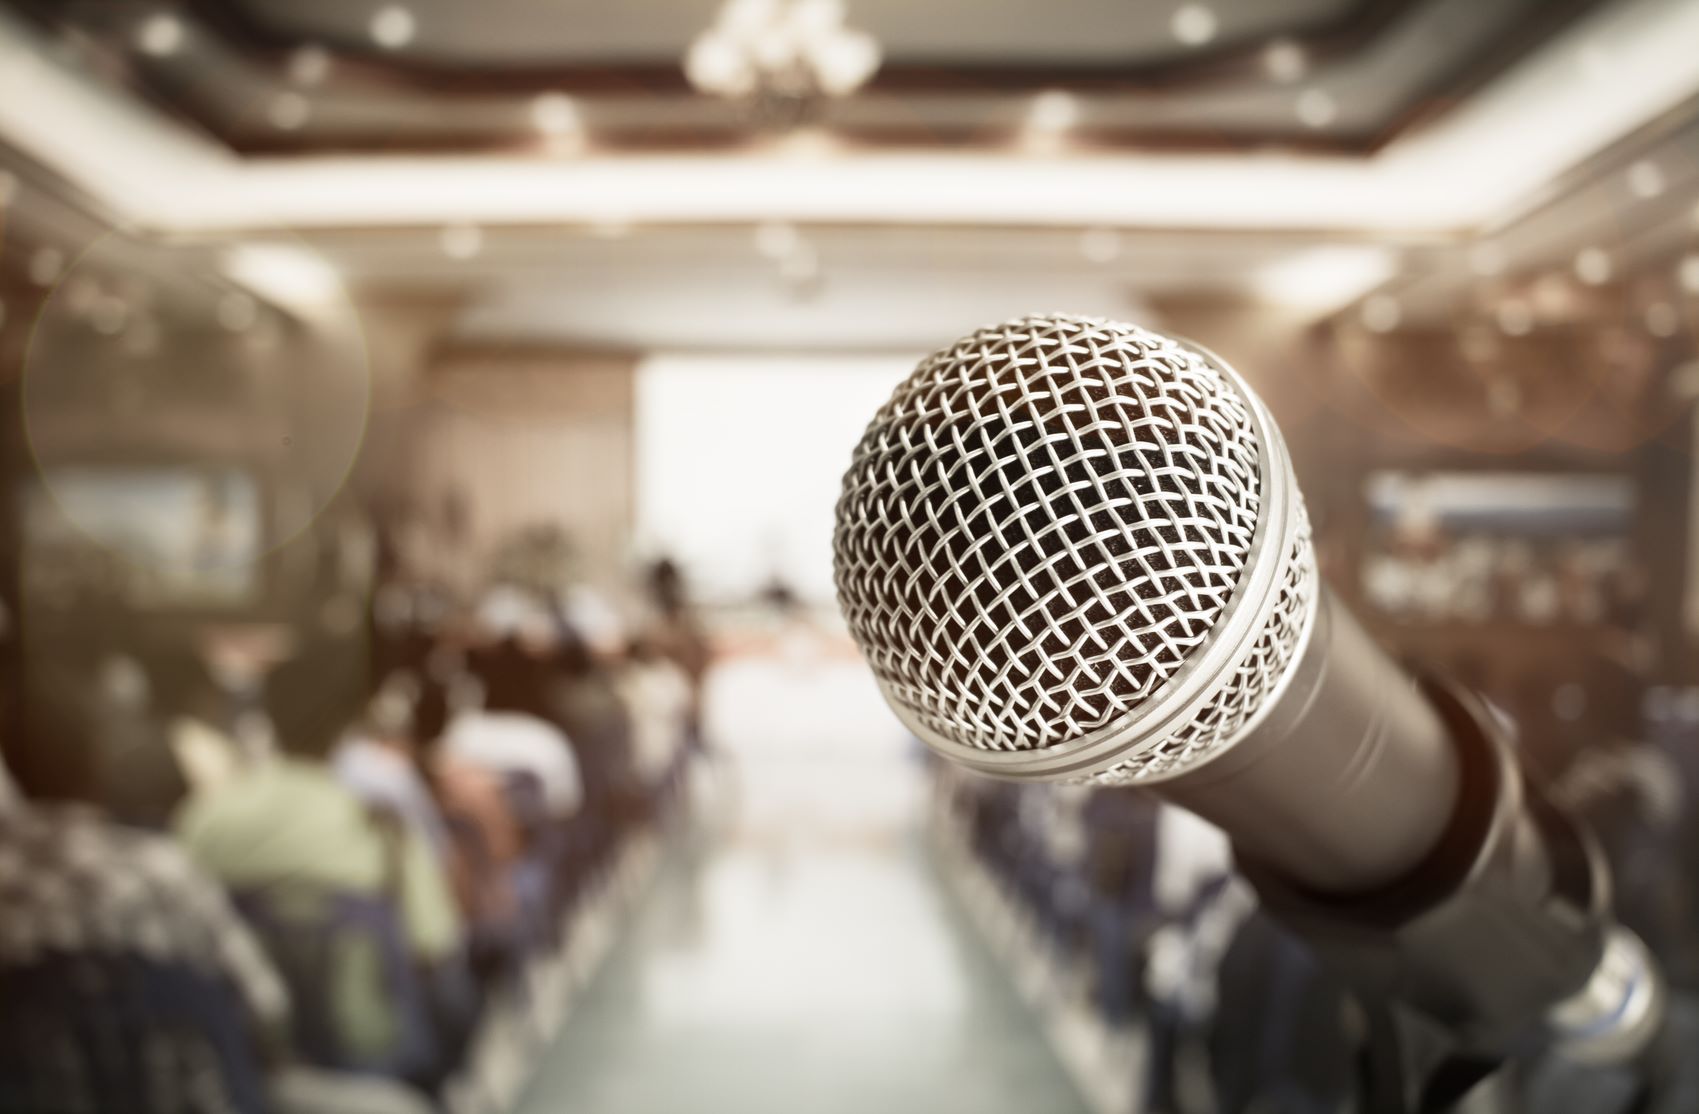 Link Roundup: 5 Inspiring Ted Talks for Small Business Owners